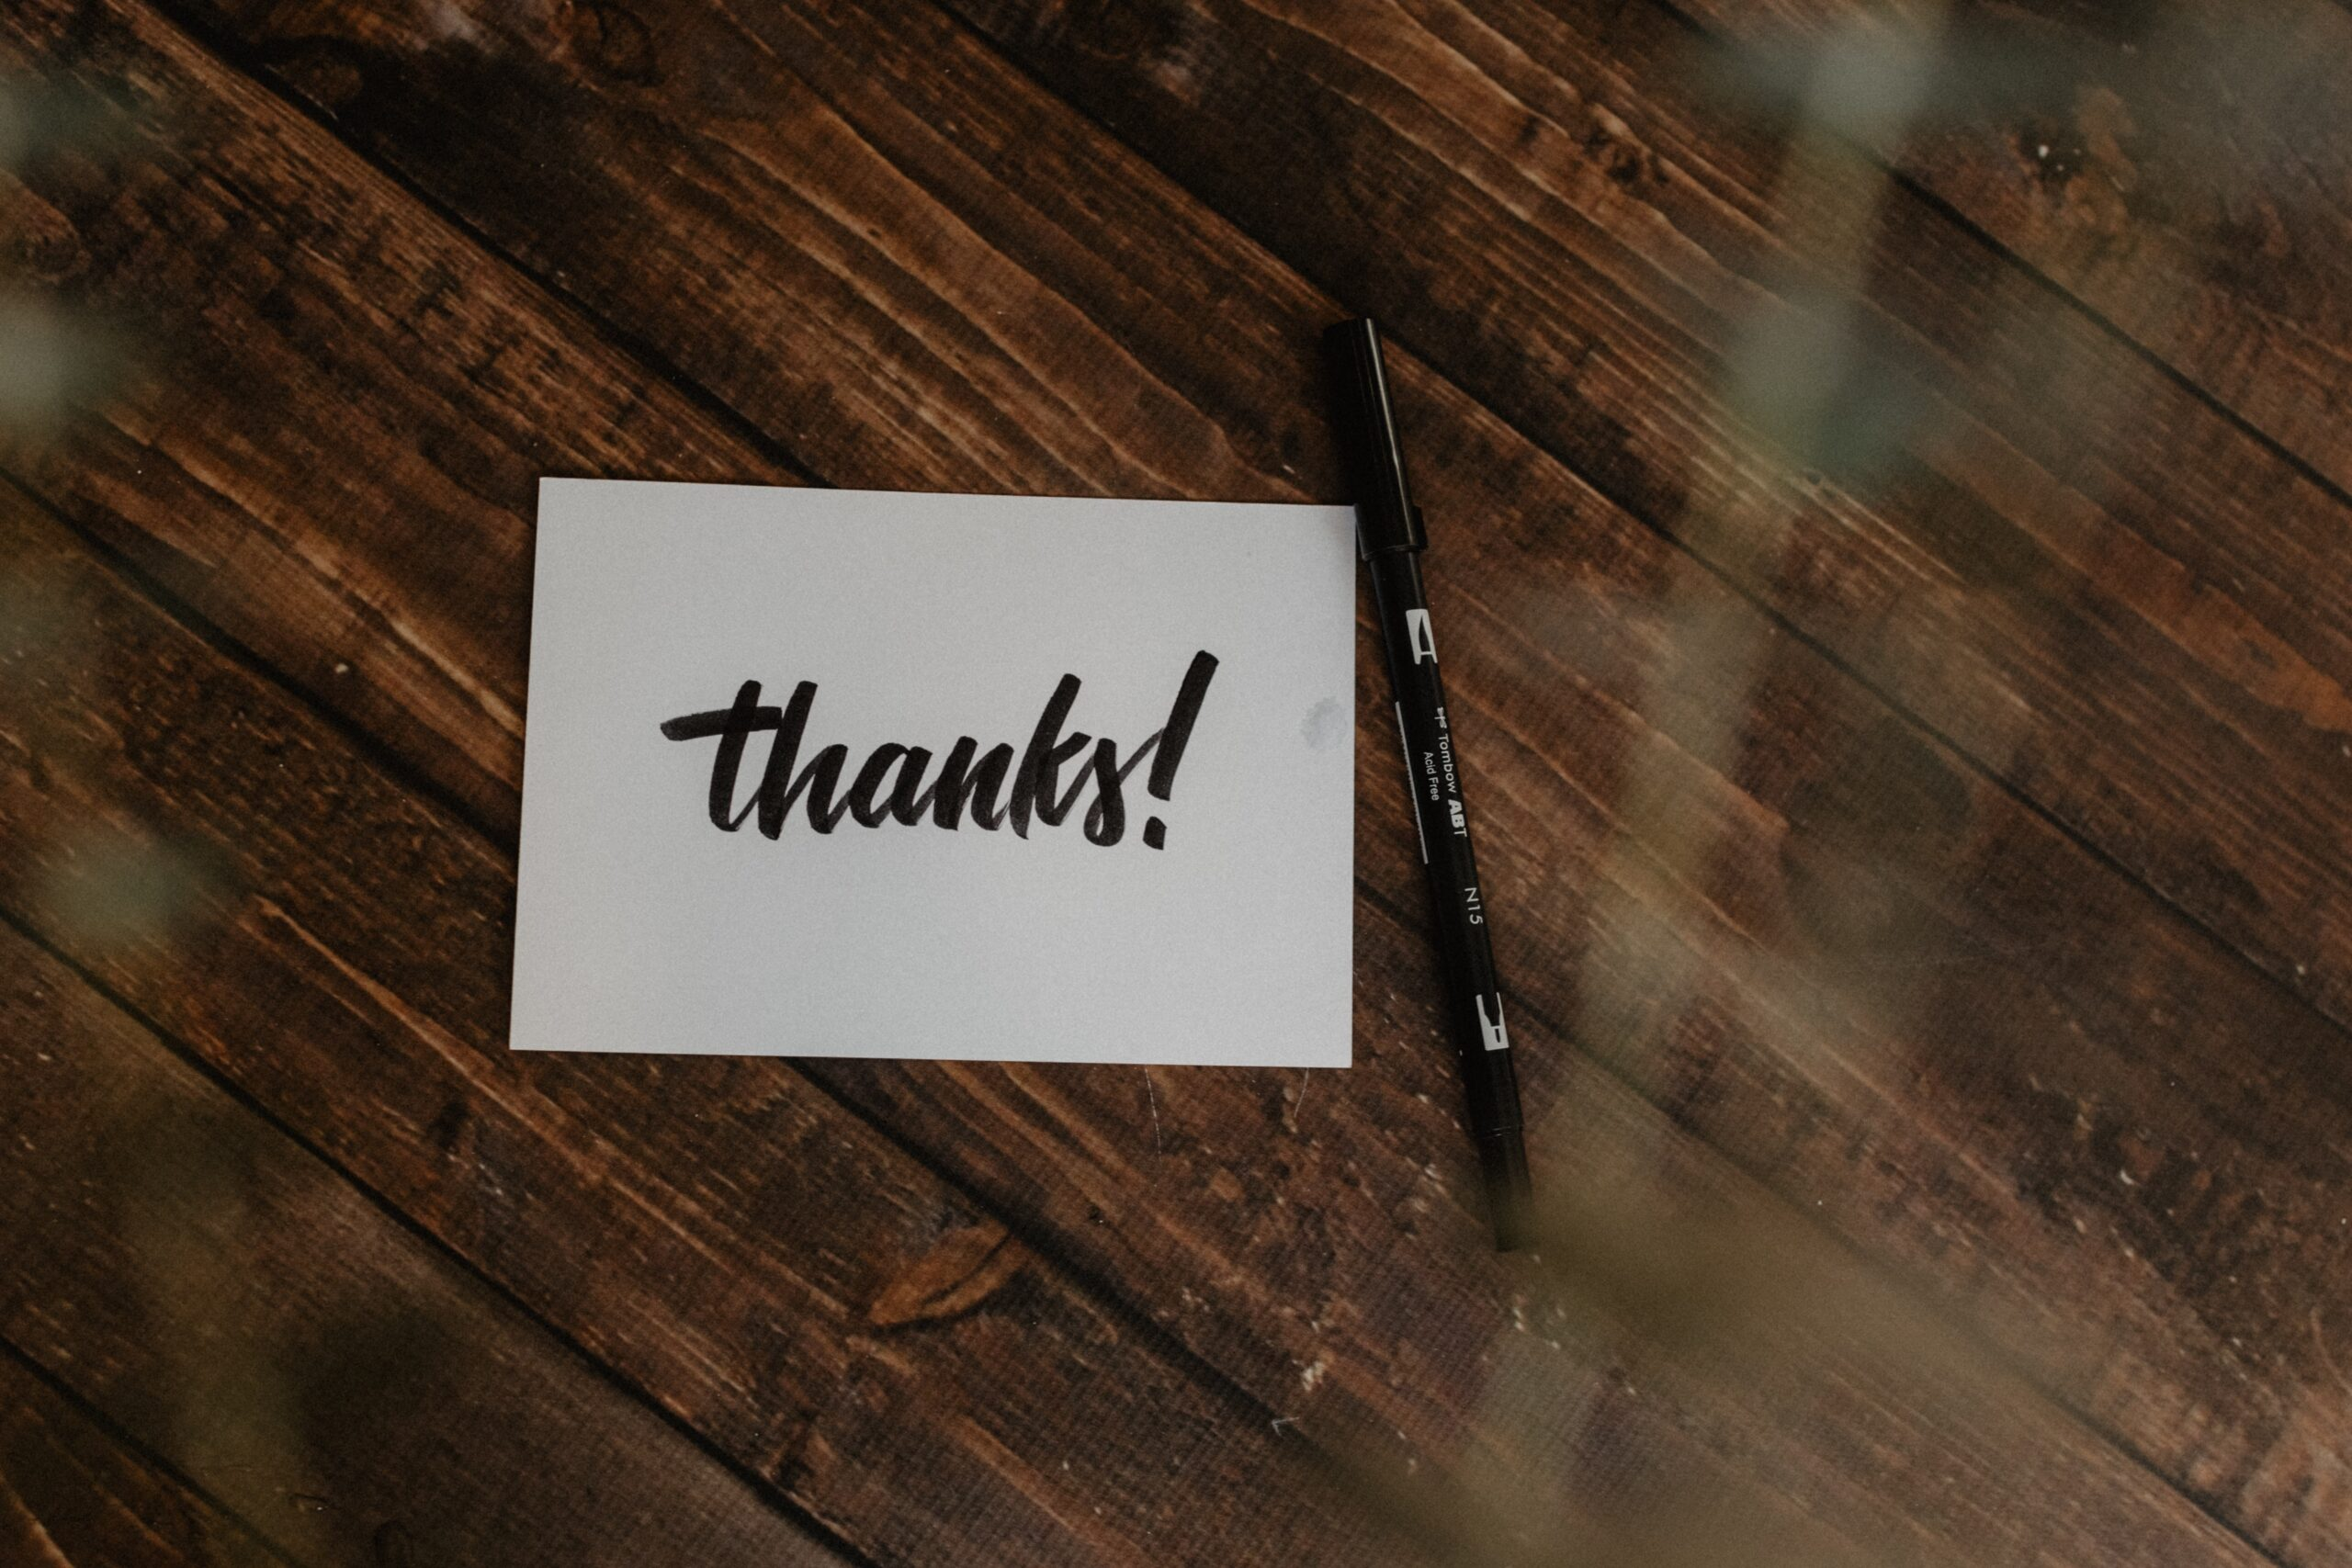 Thank You Notes: An Important Part of Your Job Search